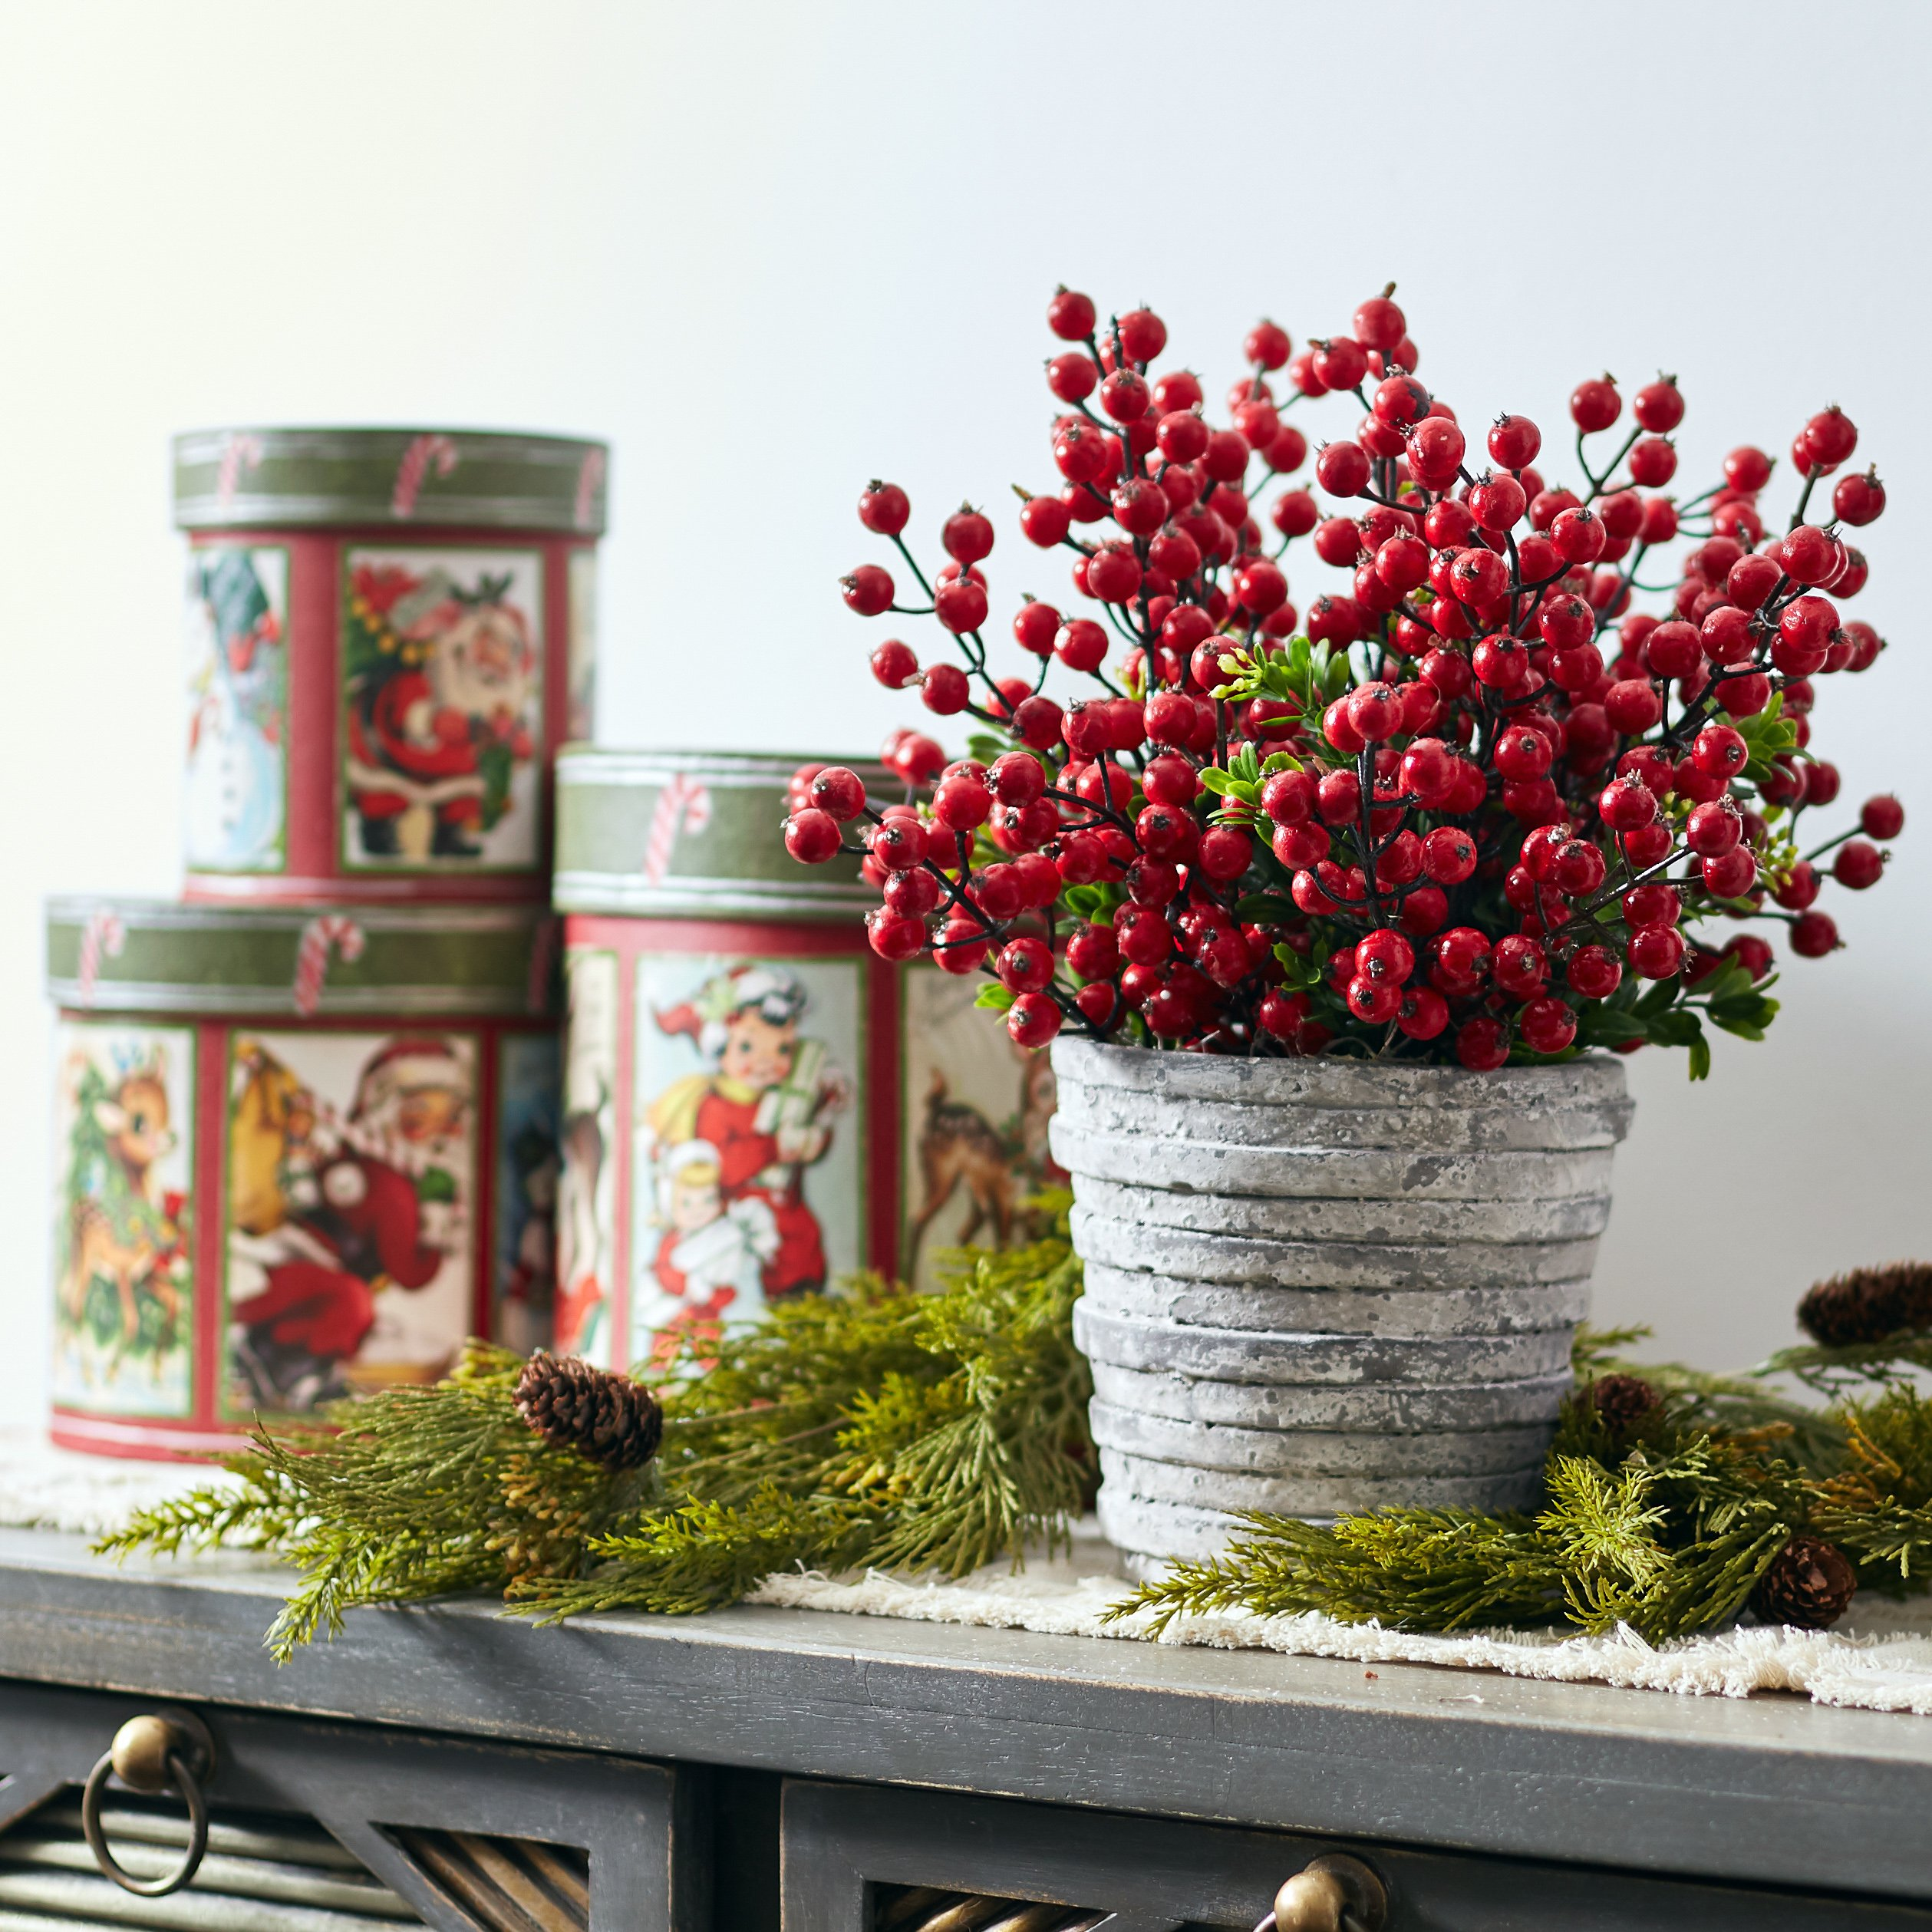 Red Christmas Berries & Boxwood Arrangement in Stoneware Pot